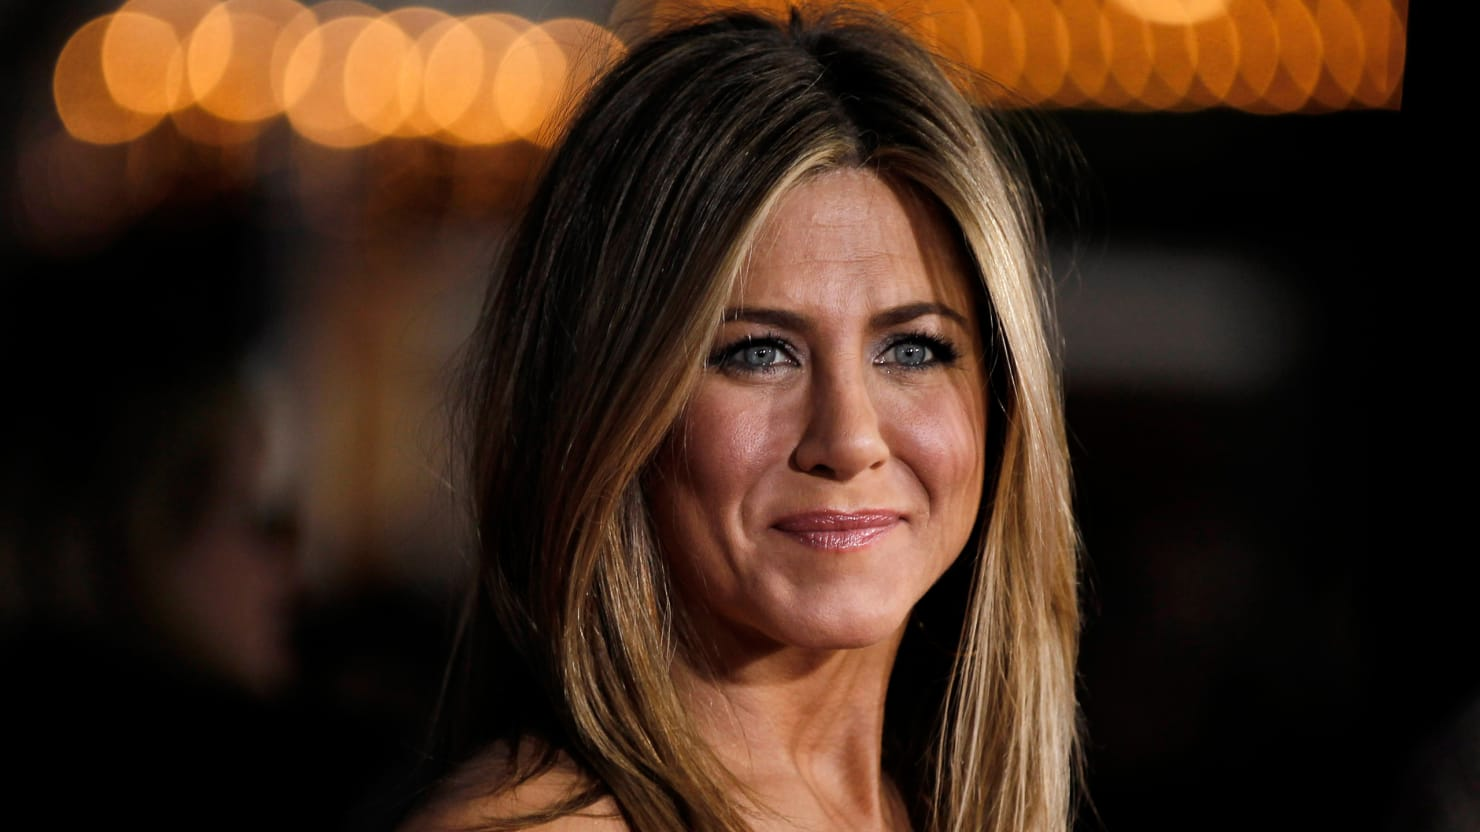 Fuck Jennifer aniston in